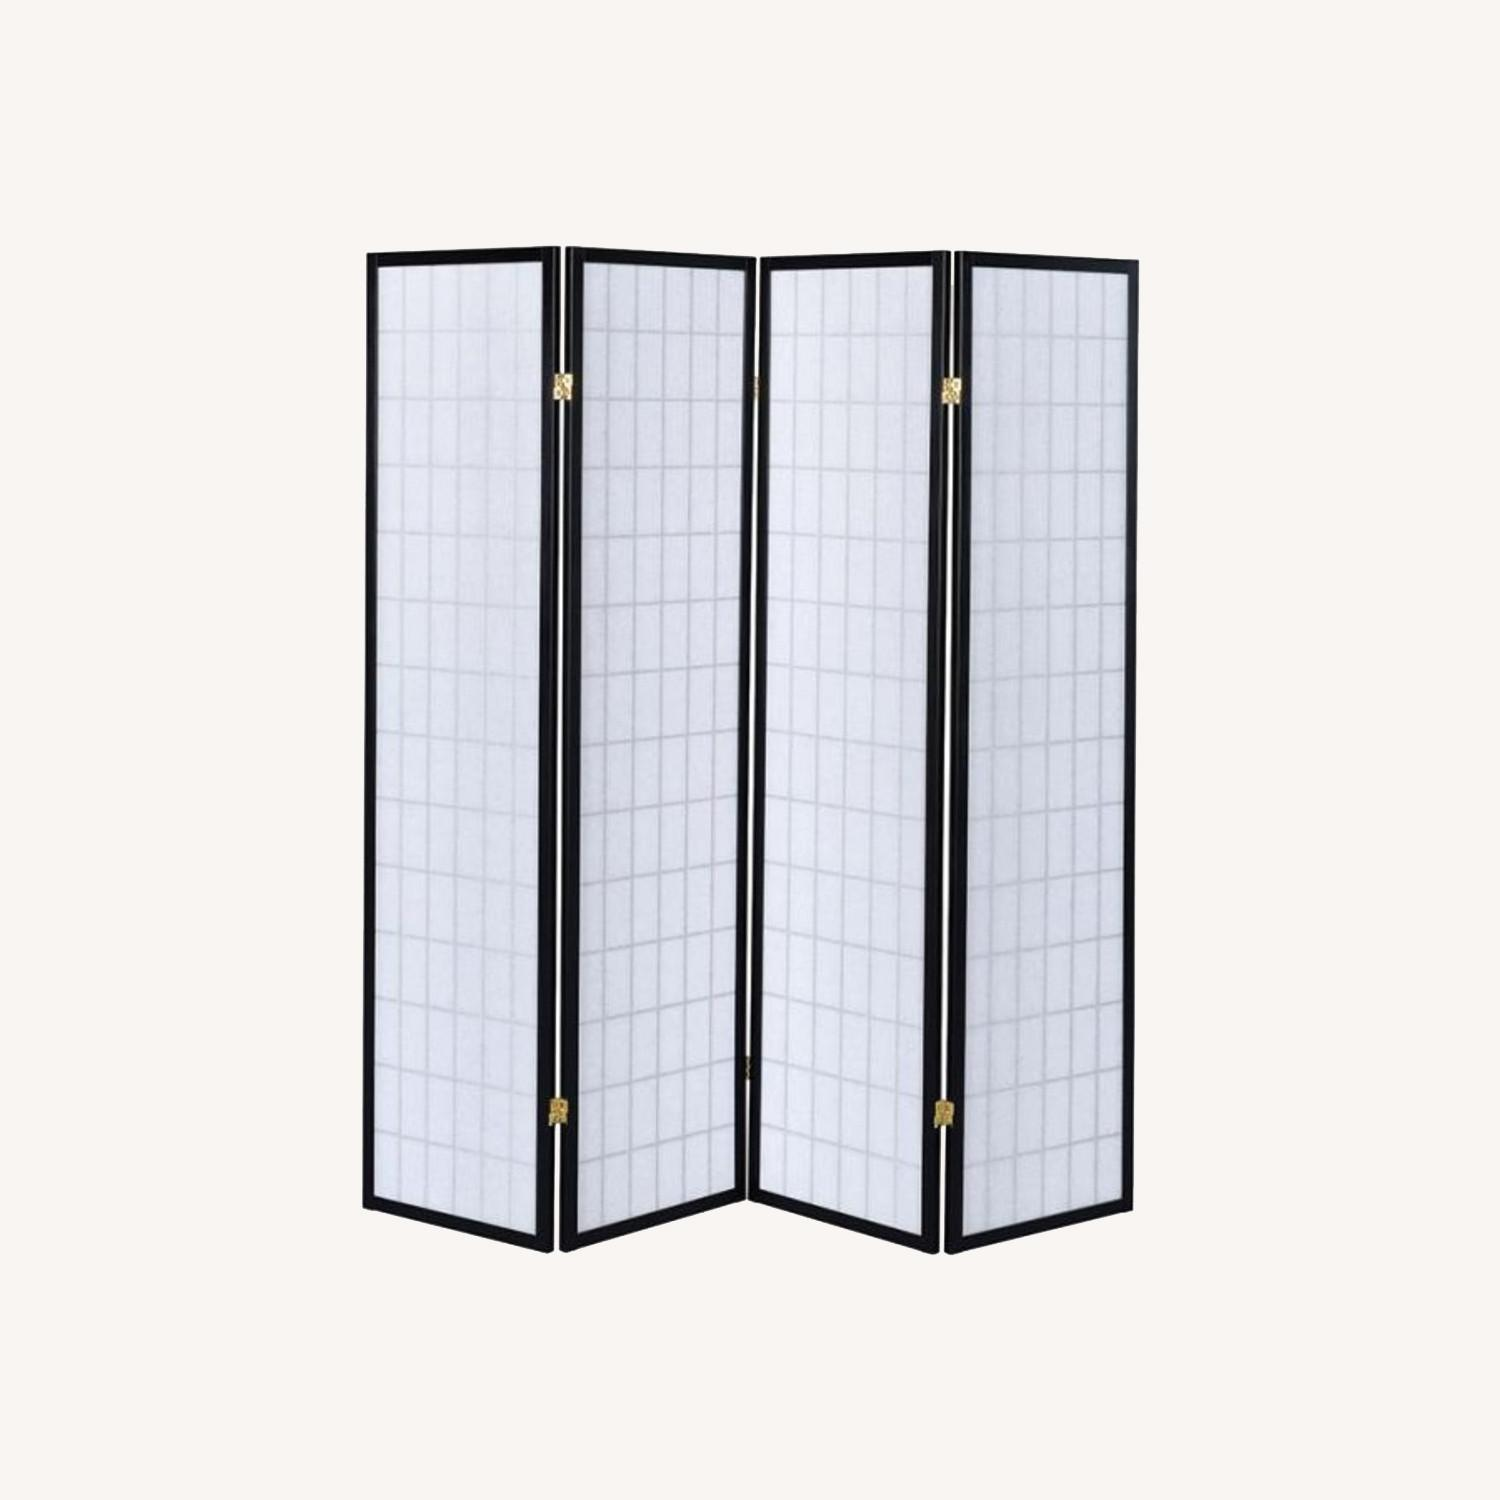 4-Panel Screen In White W/ Linear Grid Design - image-5